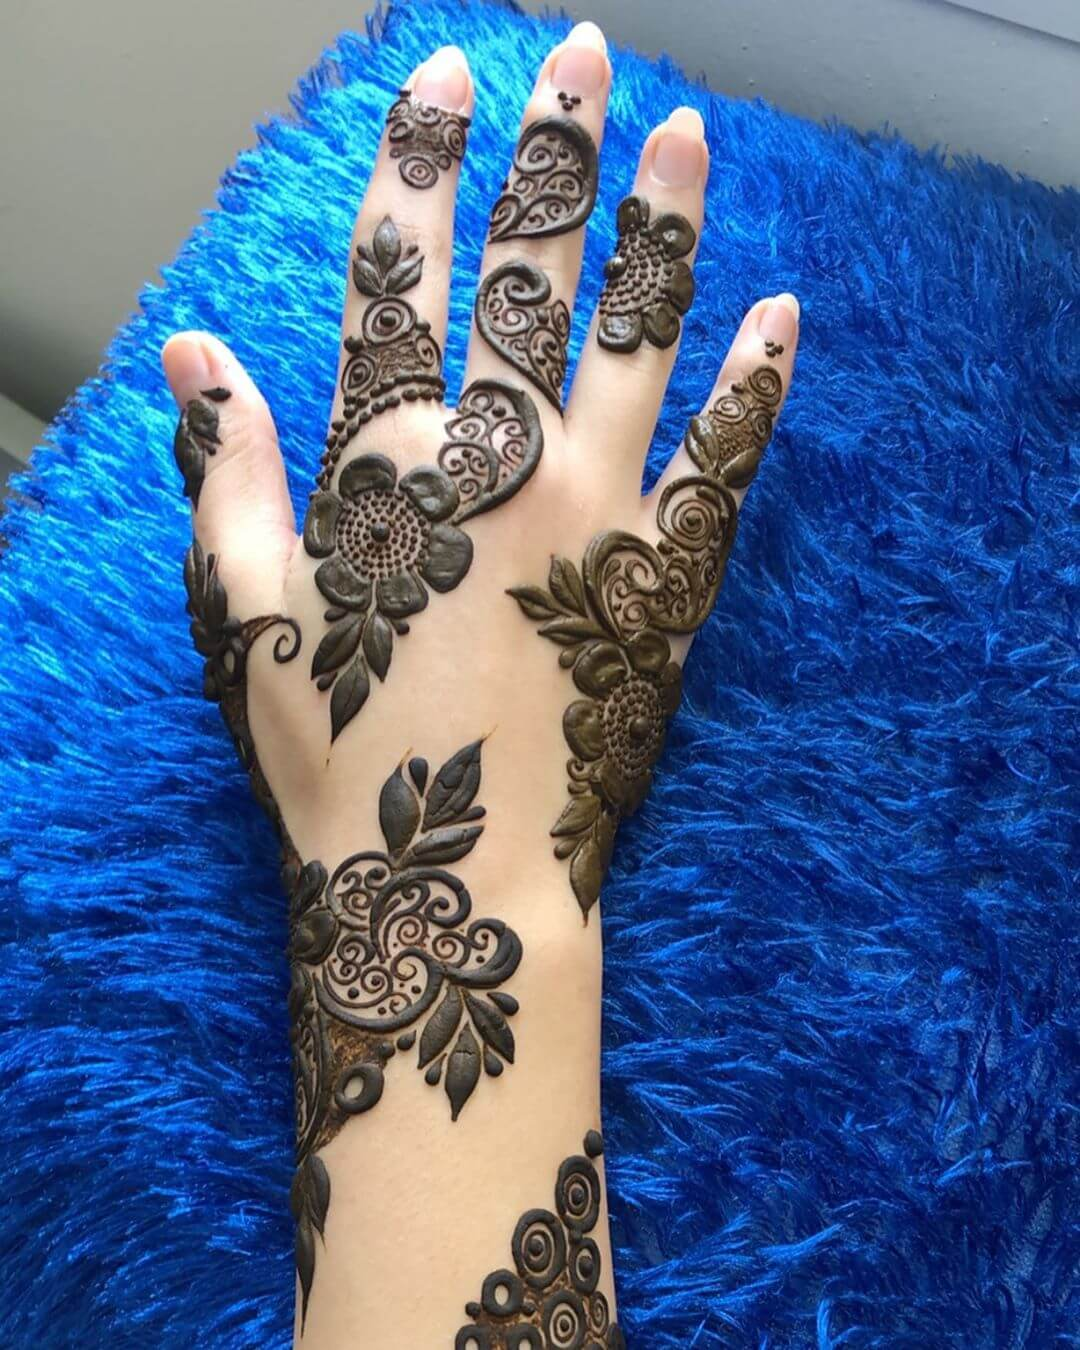 Paisleys with Dots mehndi designs for back hands